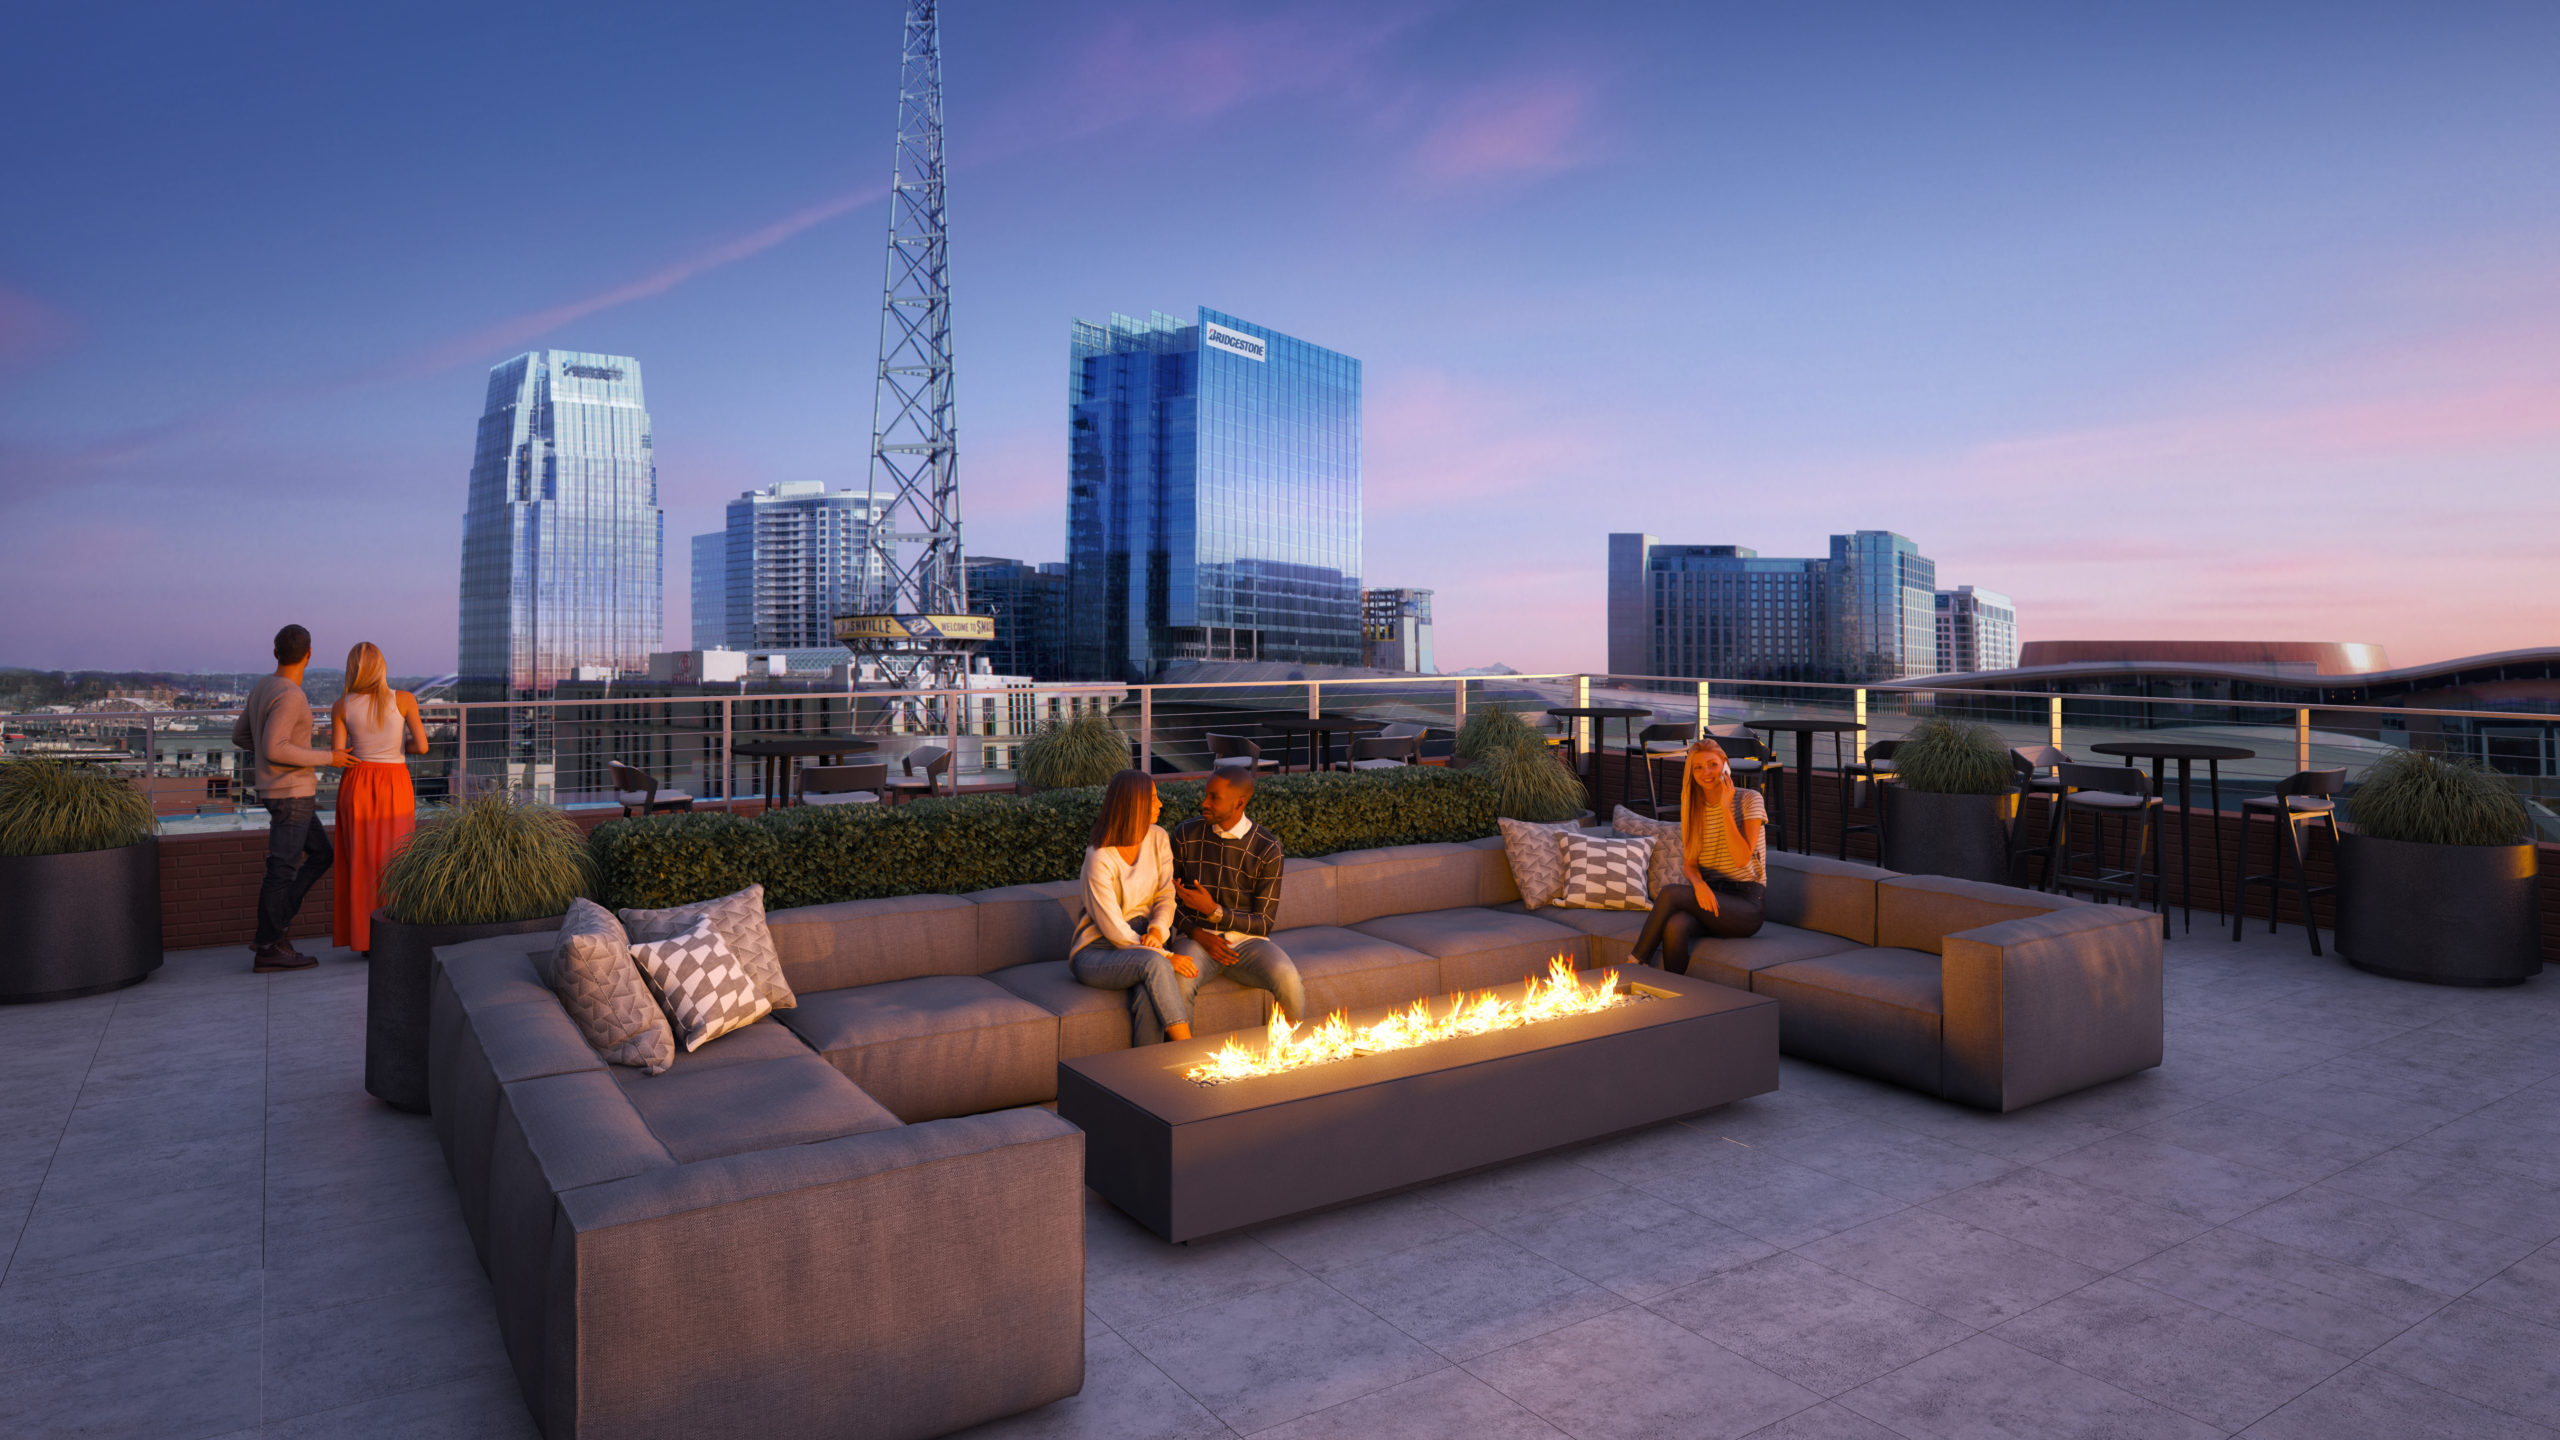 the place rooftop amenities with firepit and couches